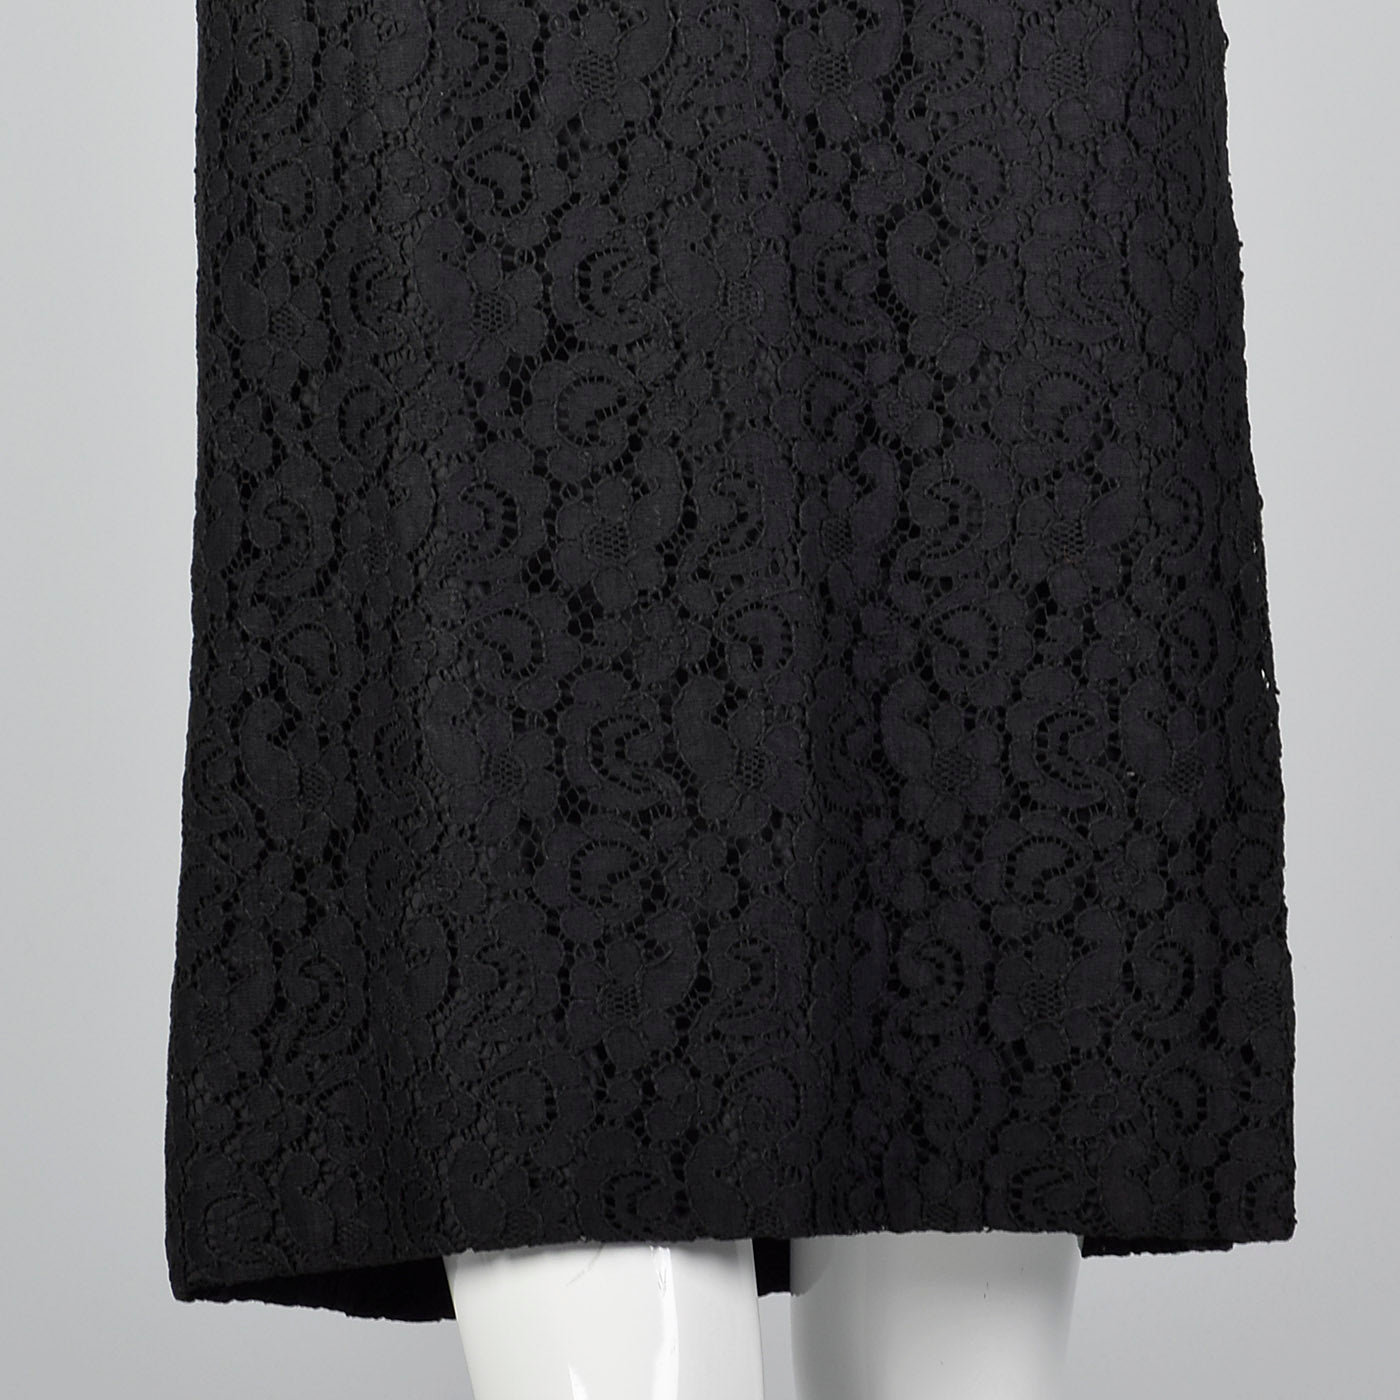 1960s Lace Overlay Shift Dress with Sheer Poof Sleeves